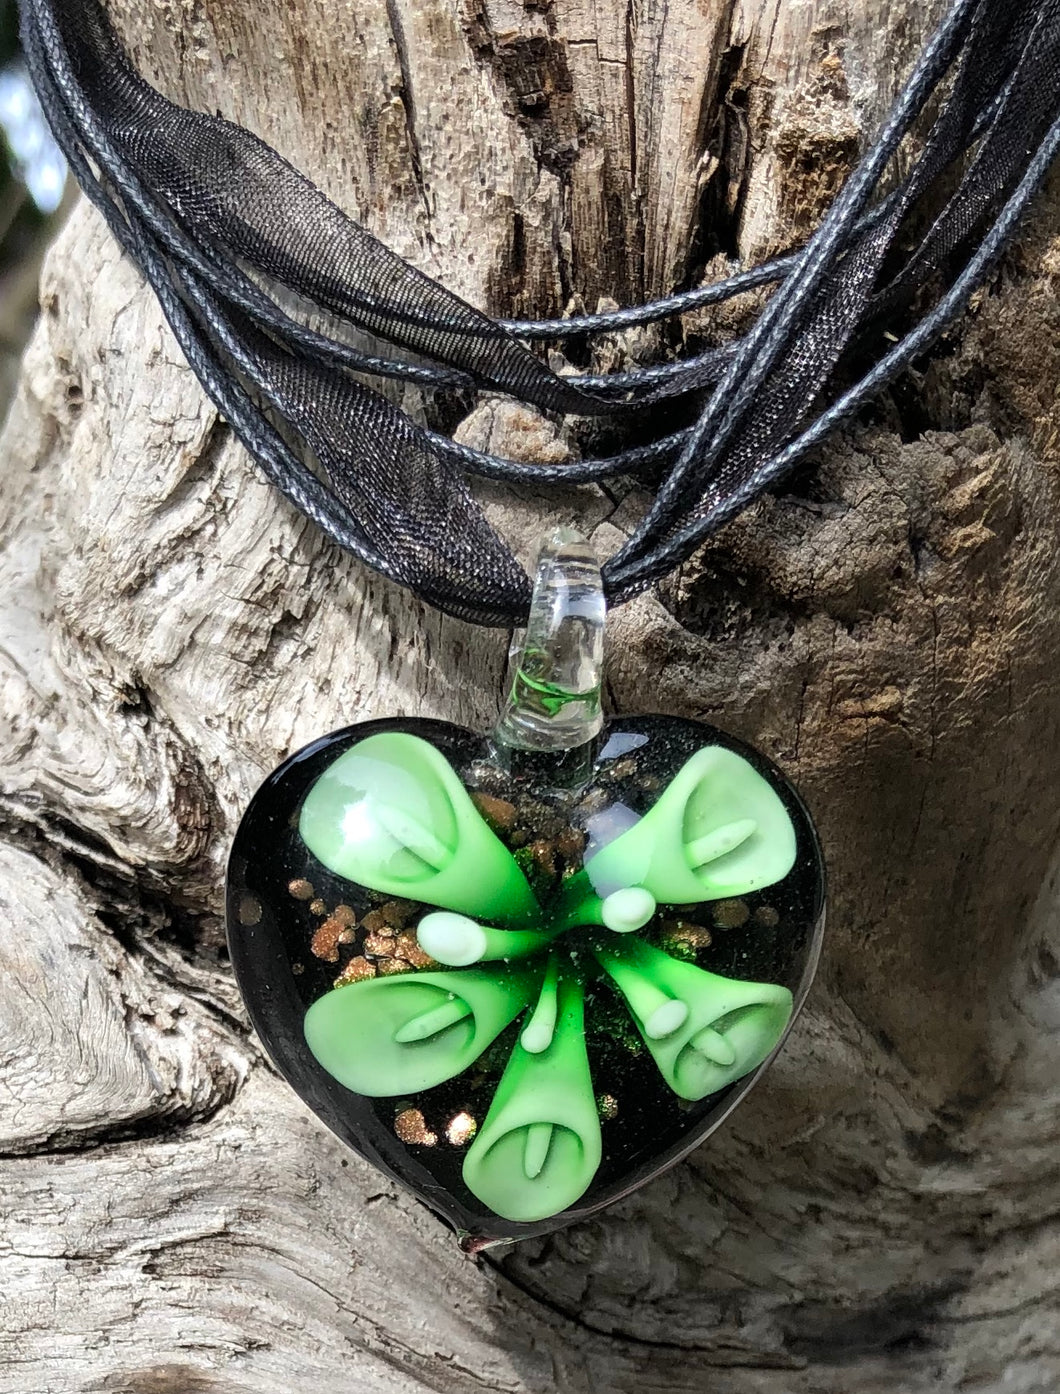 Fragile Heart Necklace - Black with Green floral design